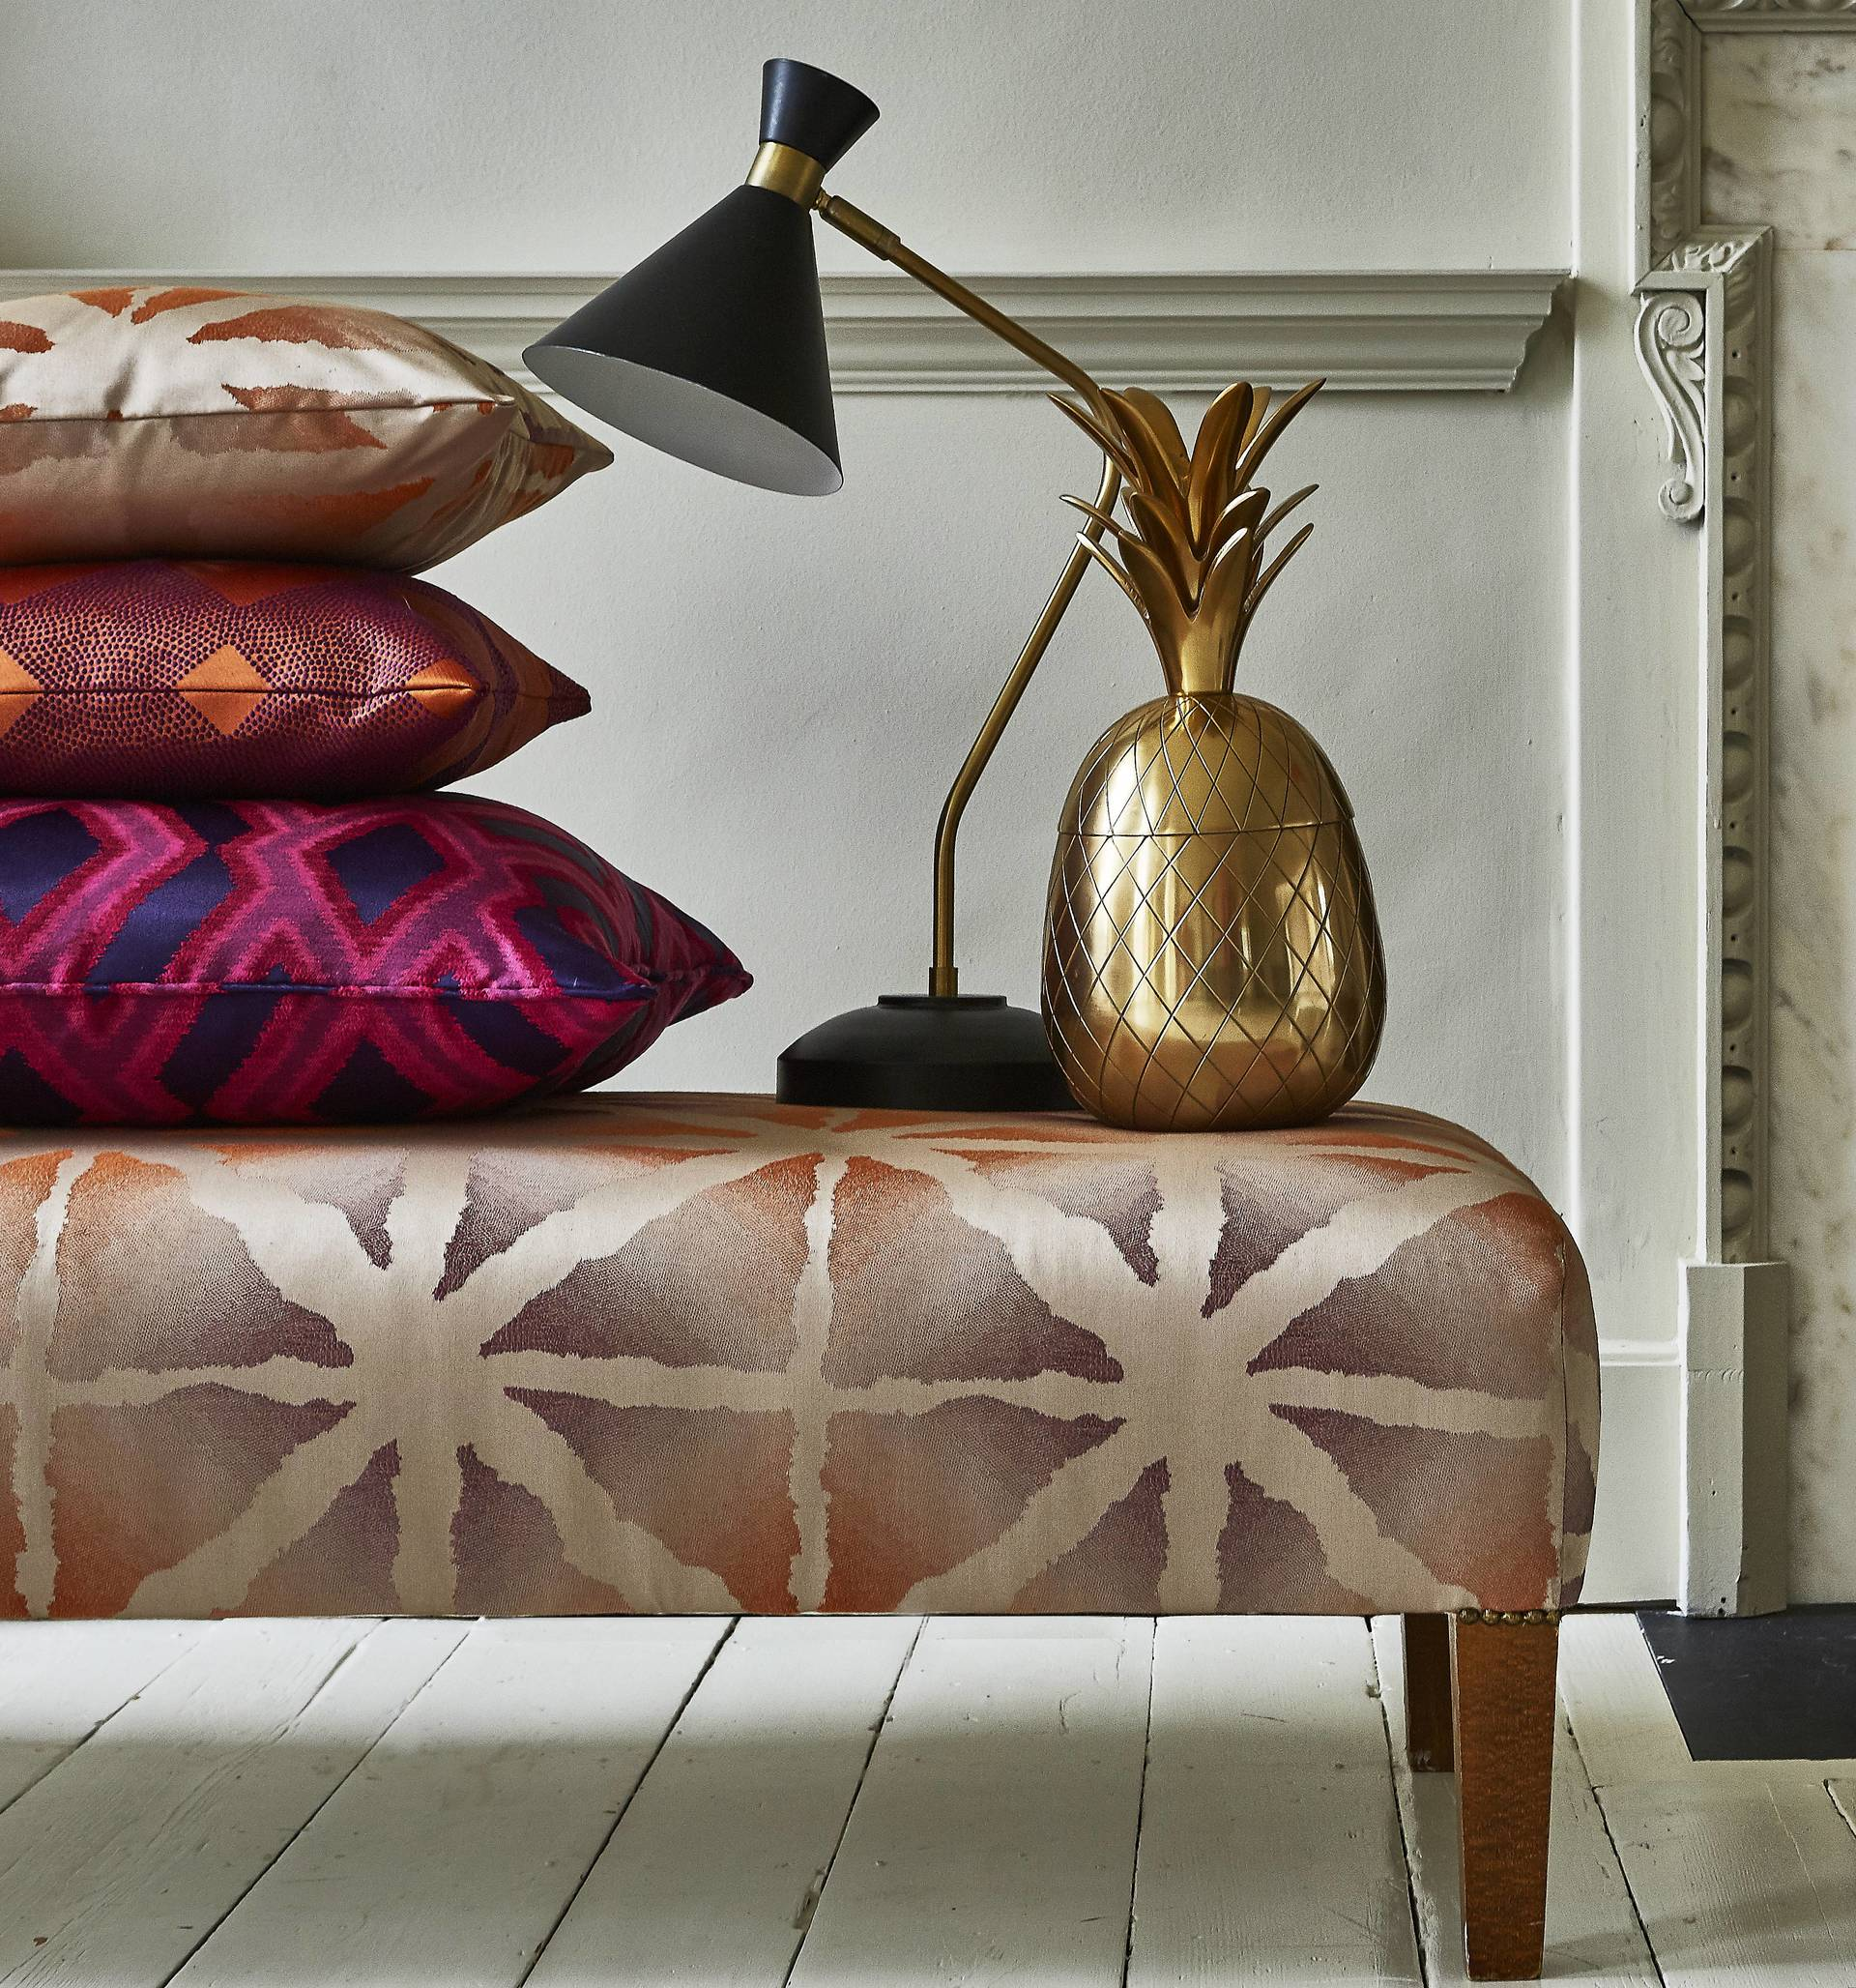 cushions and lamps